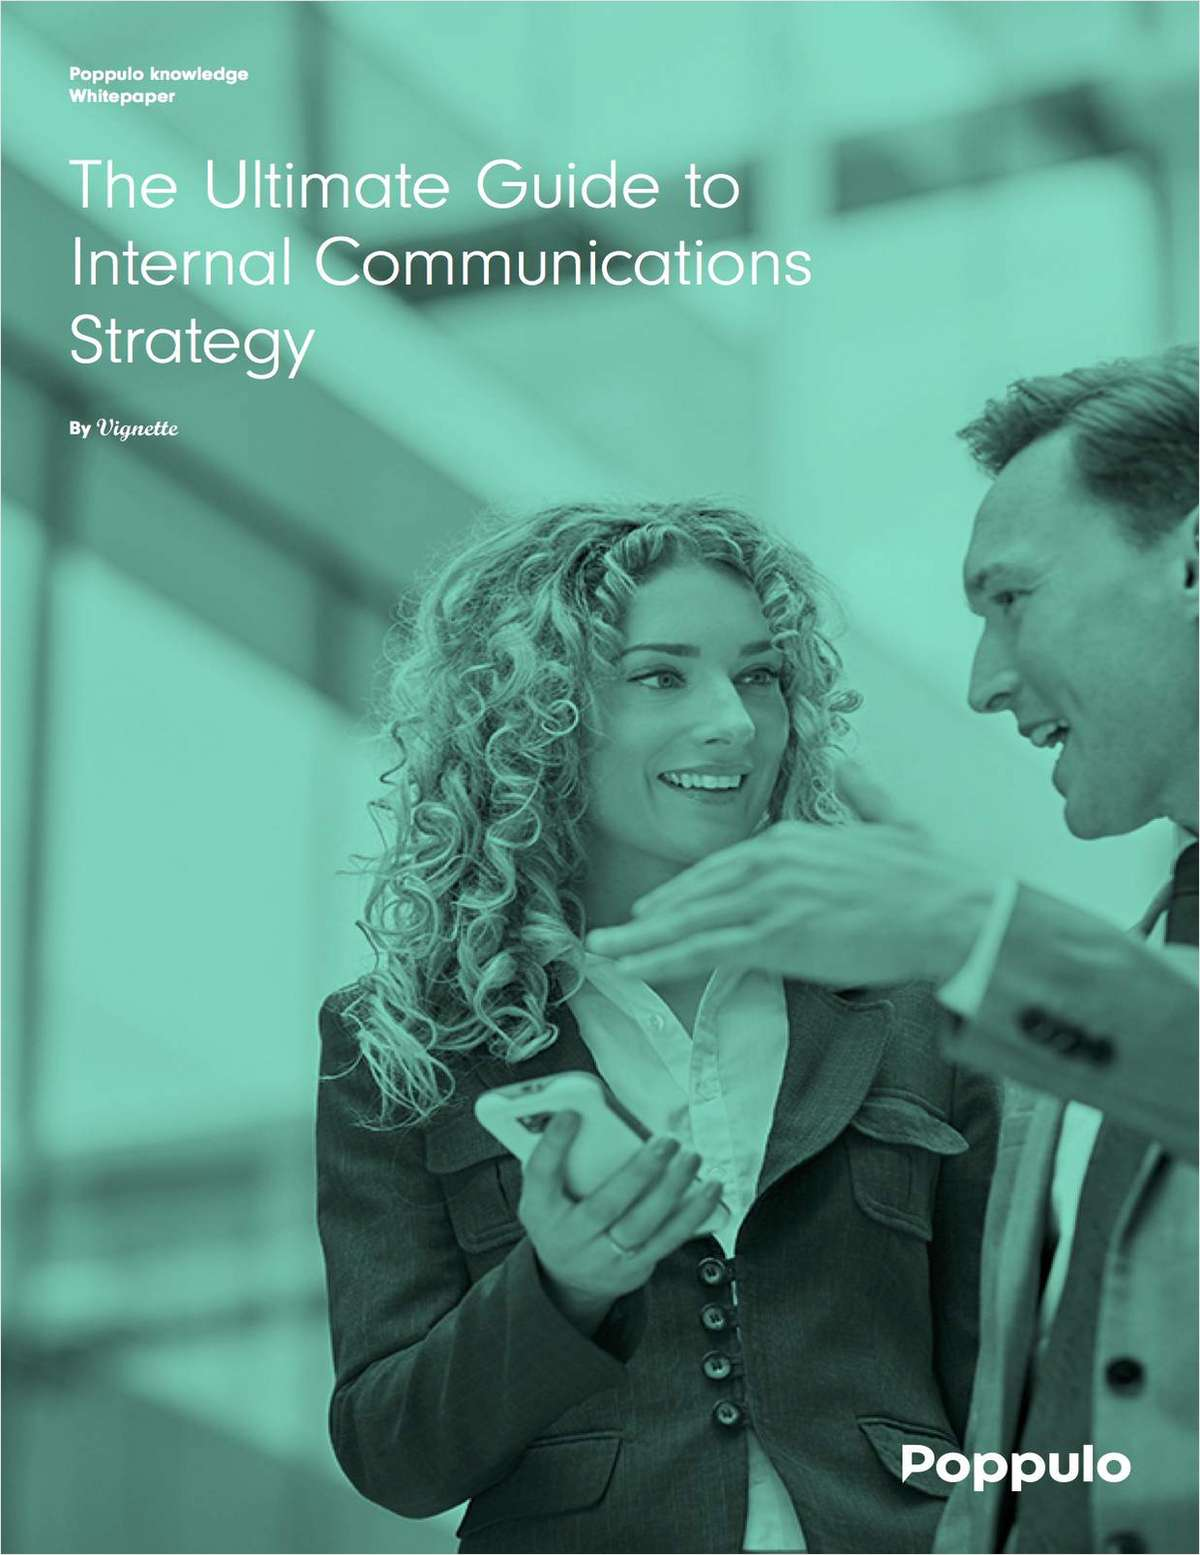 The Ultimate Guide to Internal Communications Strategy